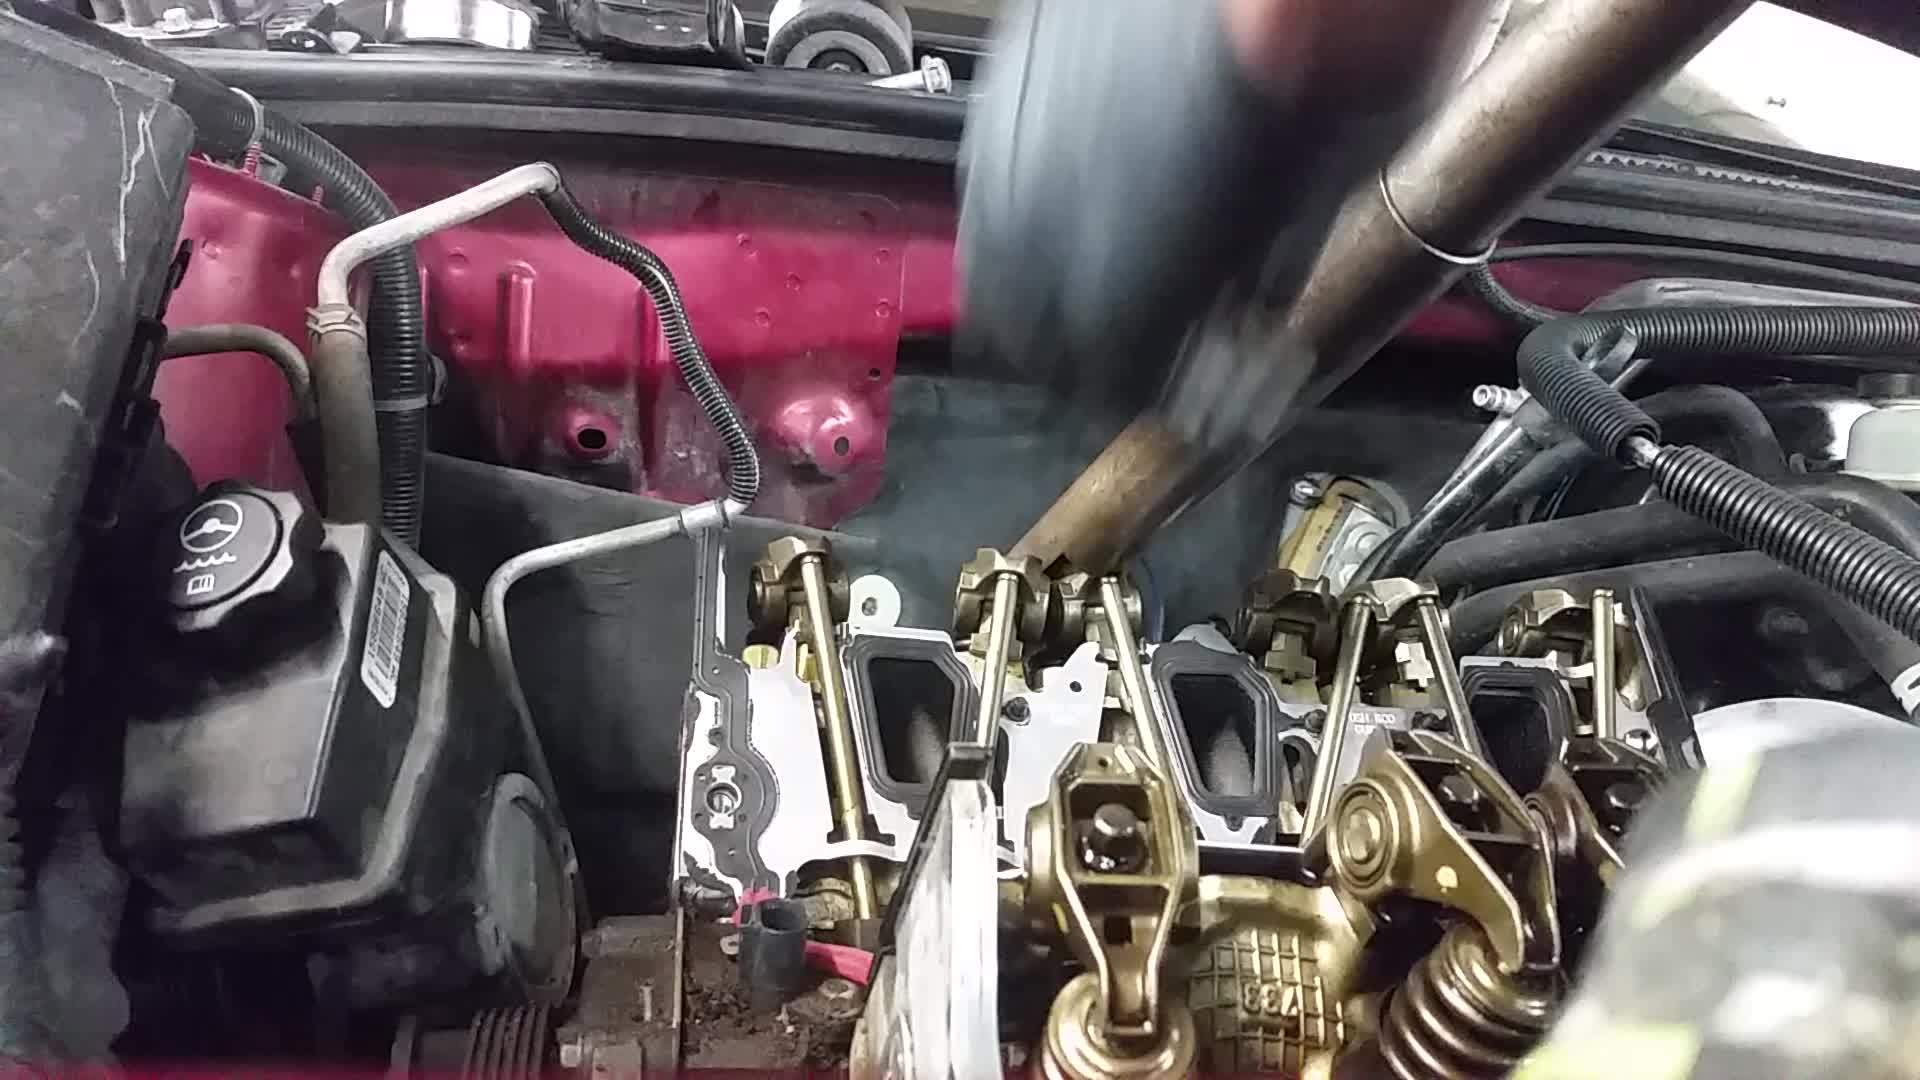 Justrolledintotheshop, justrolledintotheshop, Was doing an intake on a GM 3.5L and realized that tool to help remove the pushrods was at home. So I made a new one! (reddit) GIFs